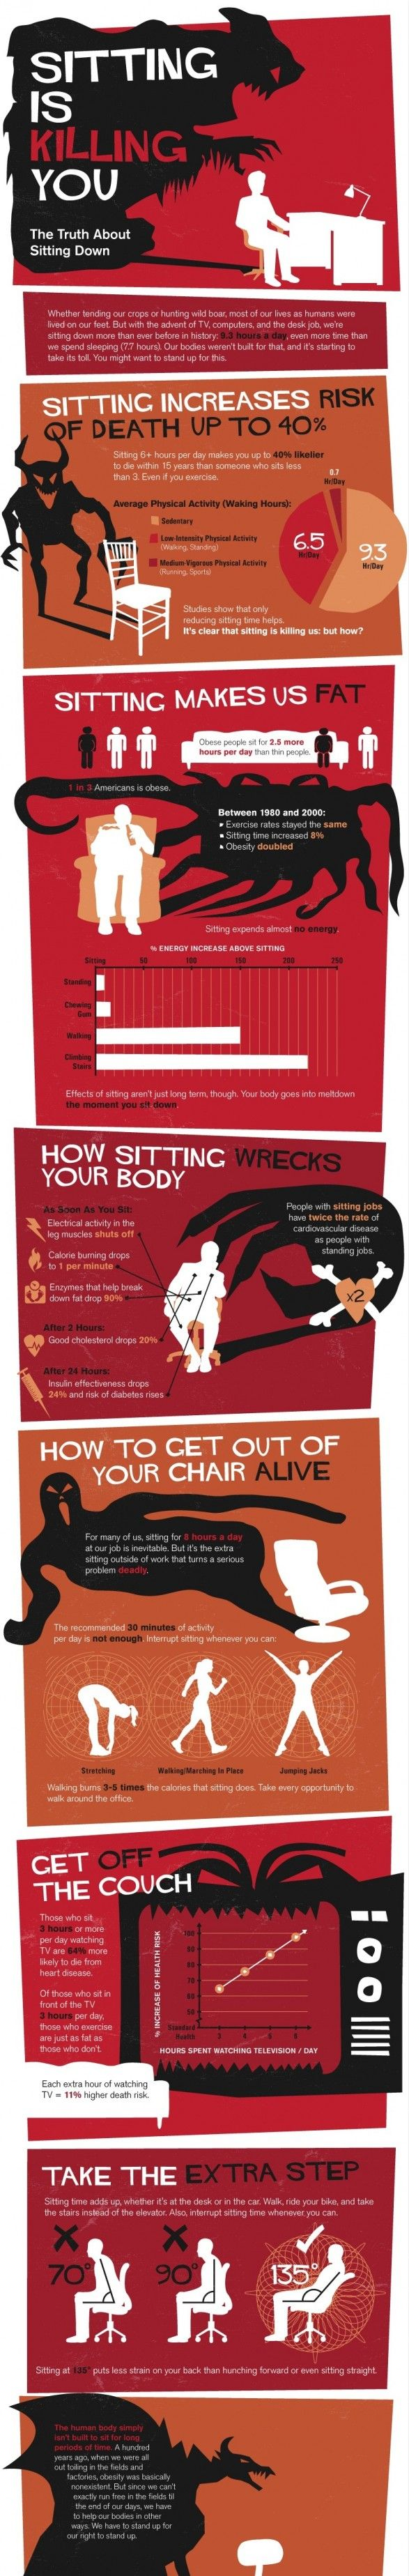 Sitting is killing you!Fit, Sitting, Offices, Keep Moving, Stands Desks, Healthy, Kill, Infographic, Info Graphics